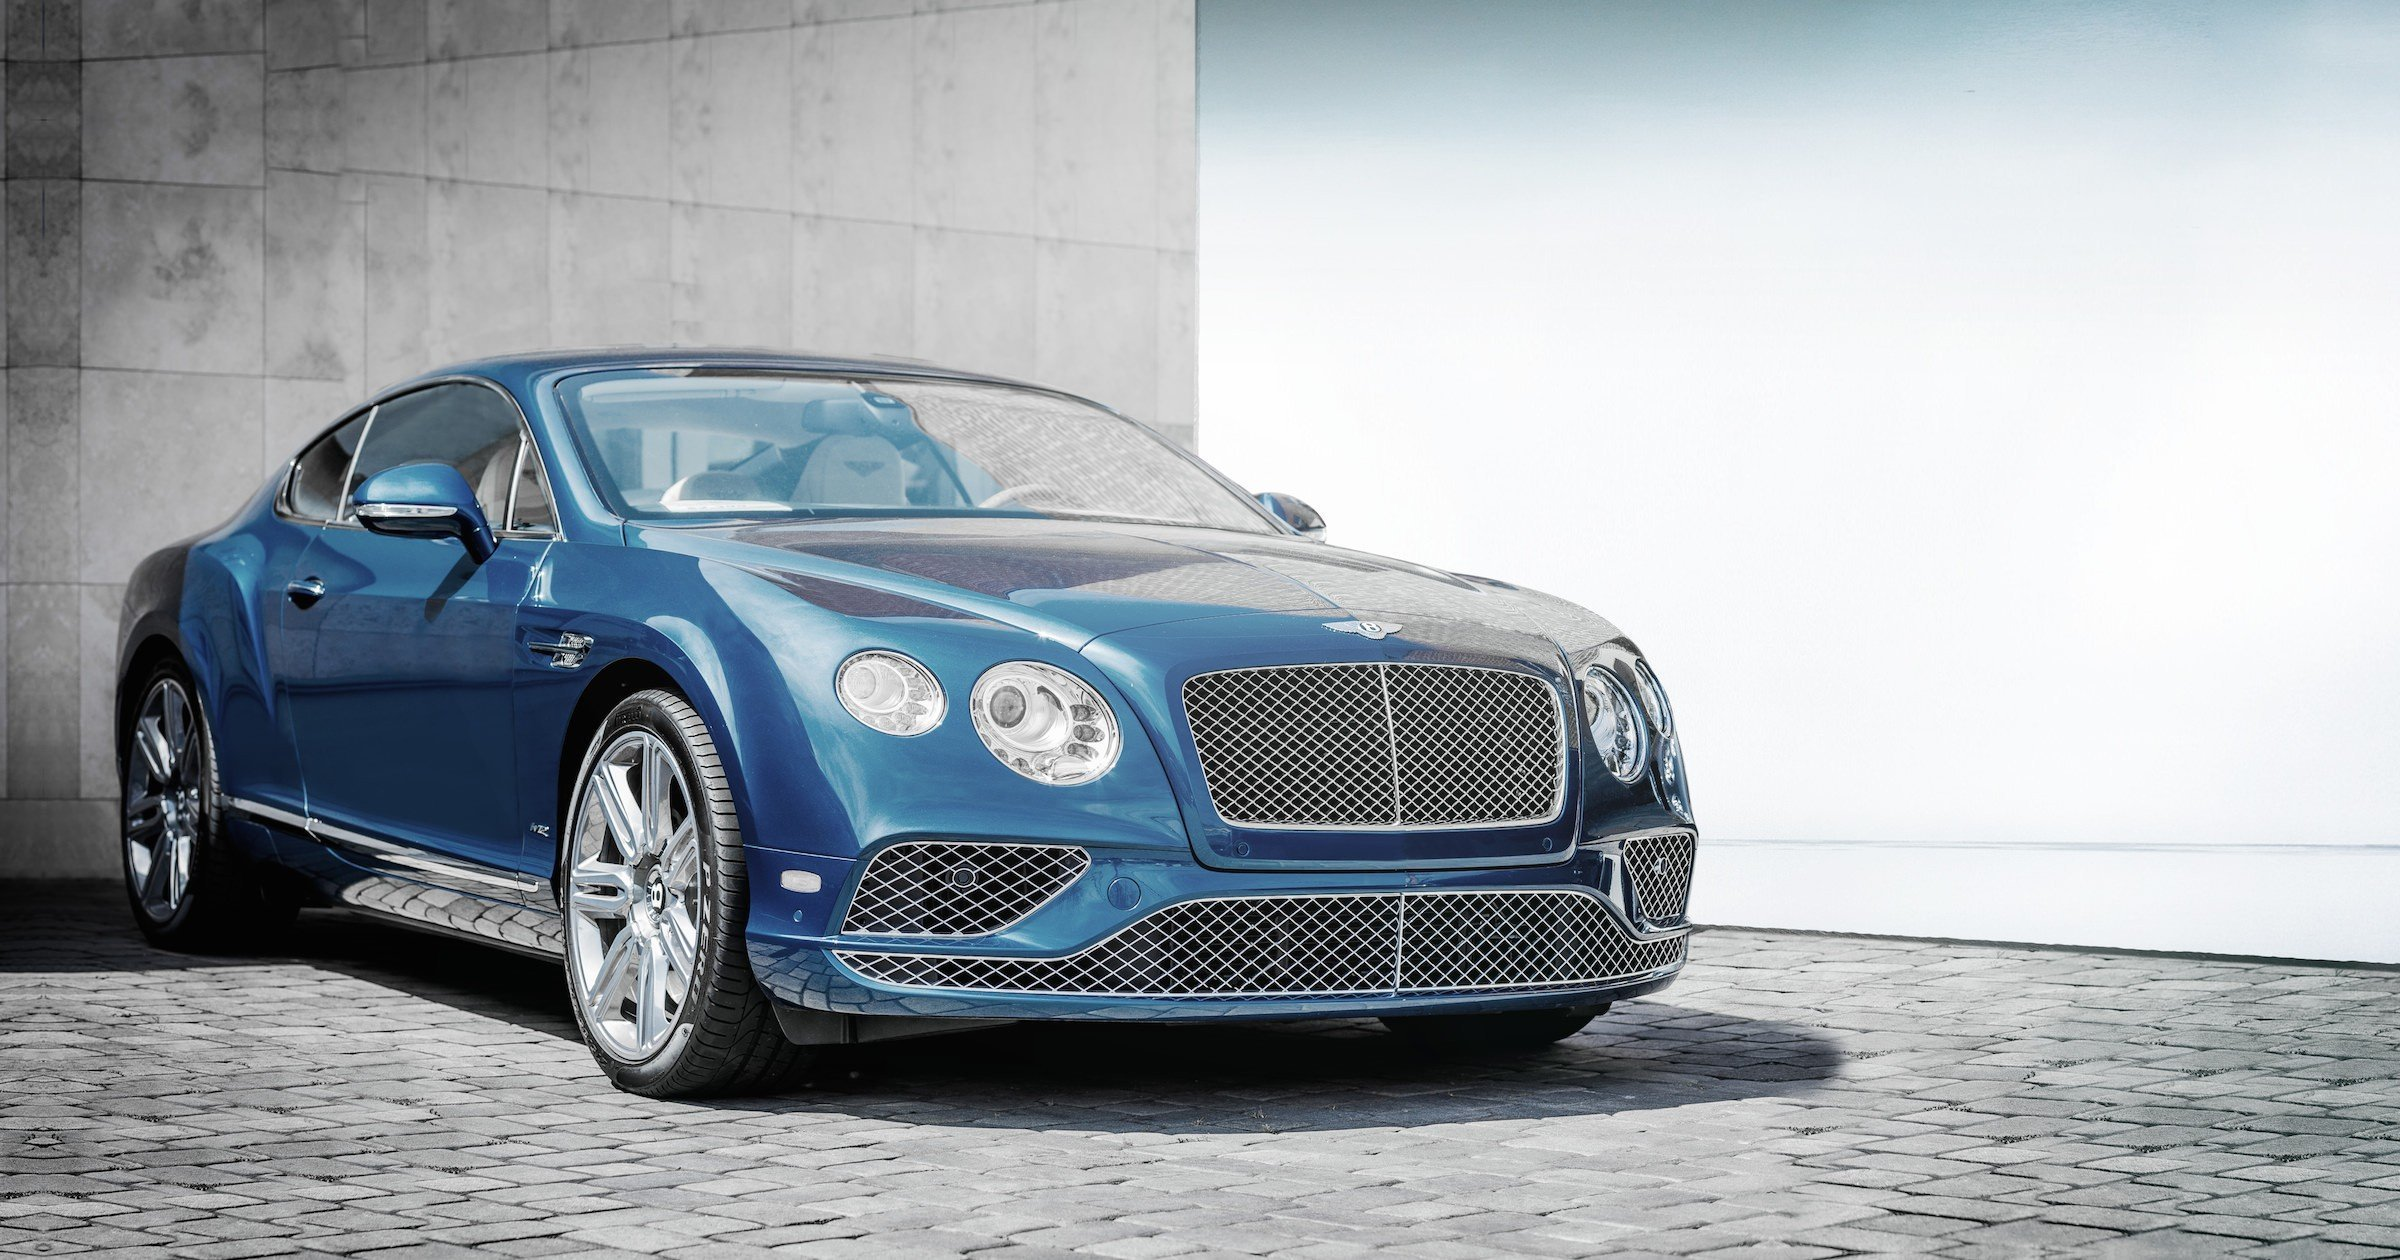 Latest Bentley Car Hd Wallpapers Desktop And Mobile Images Free Download